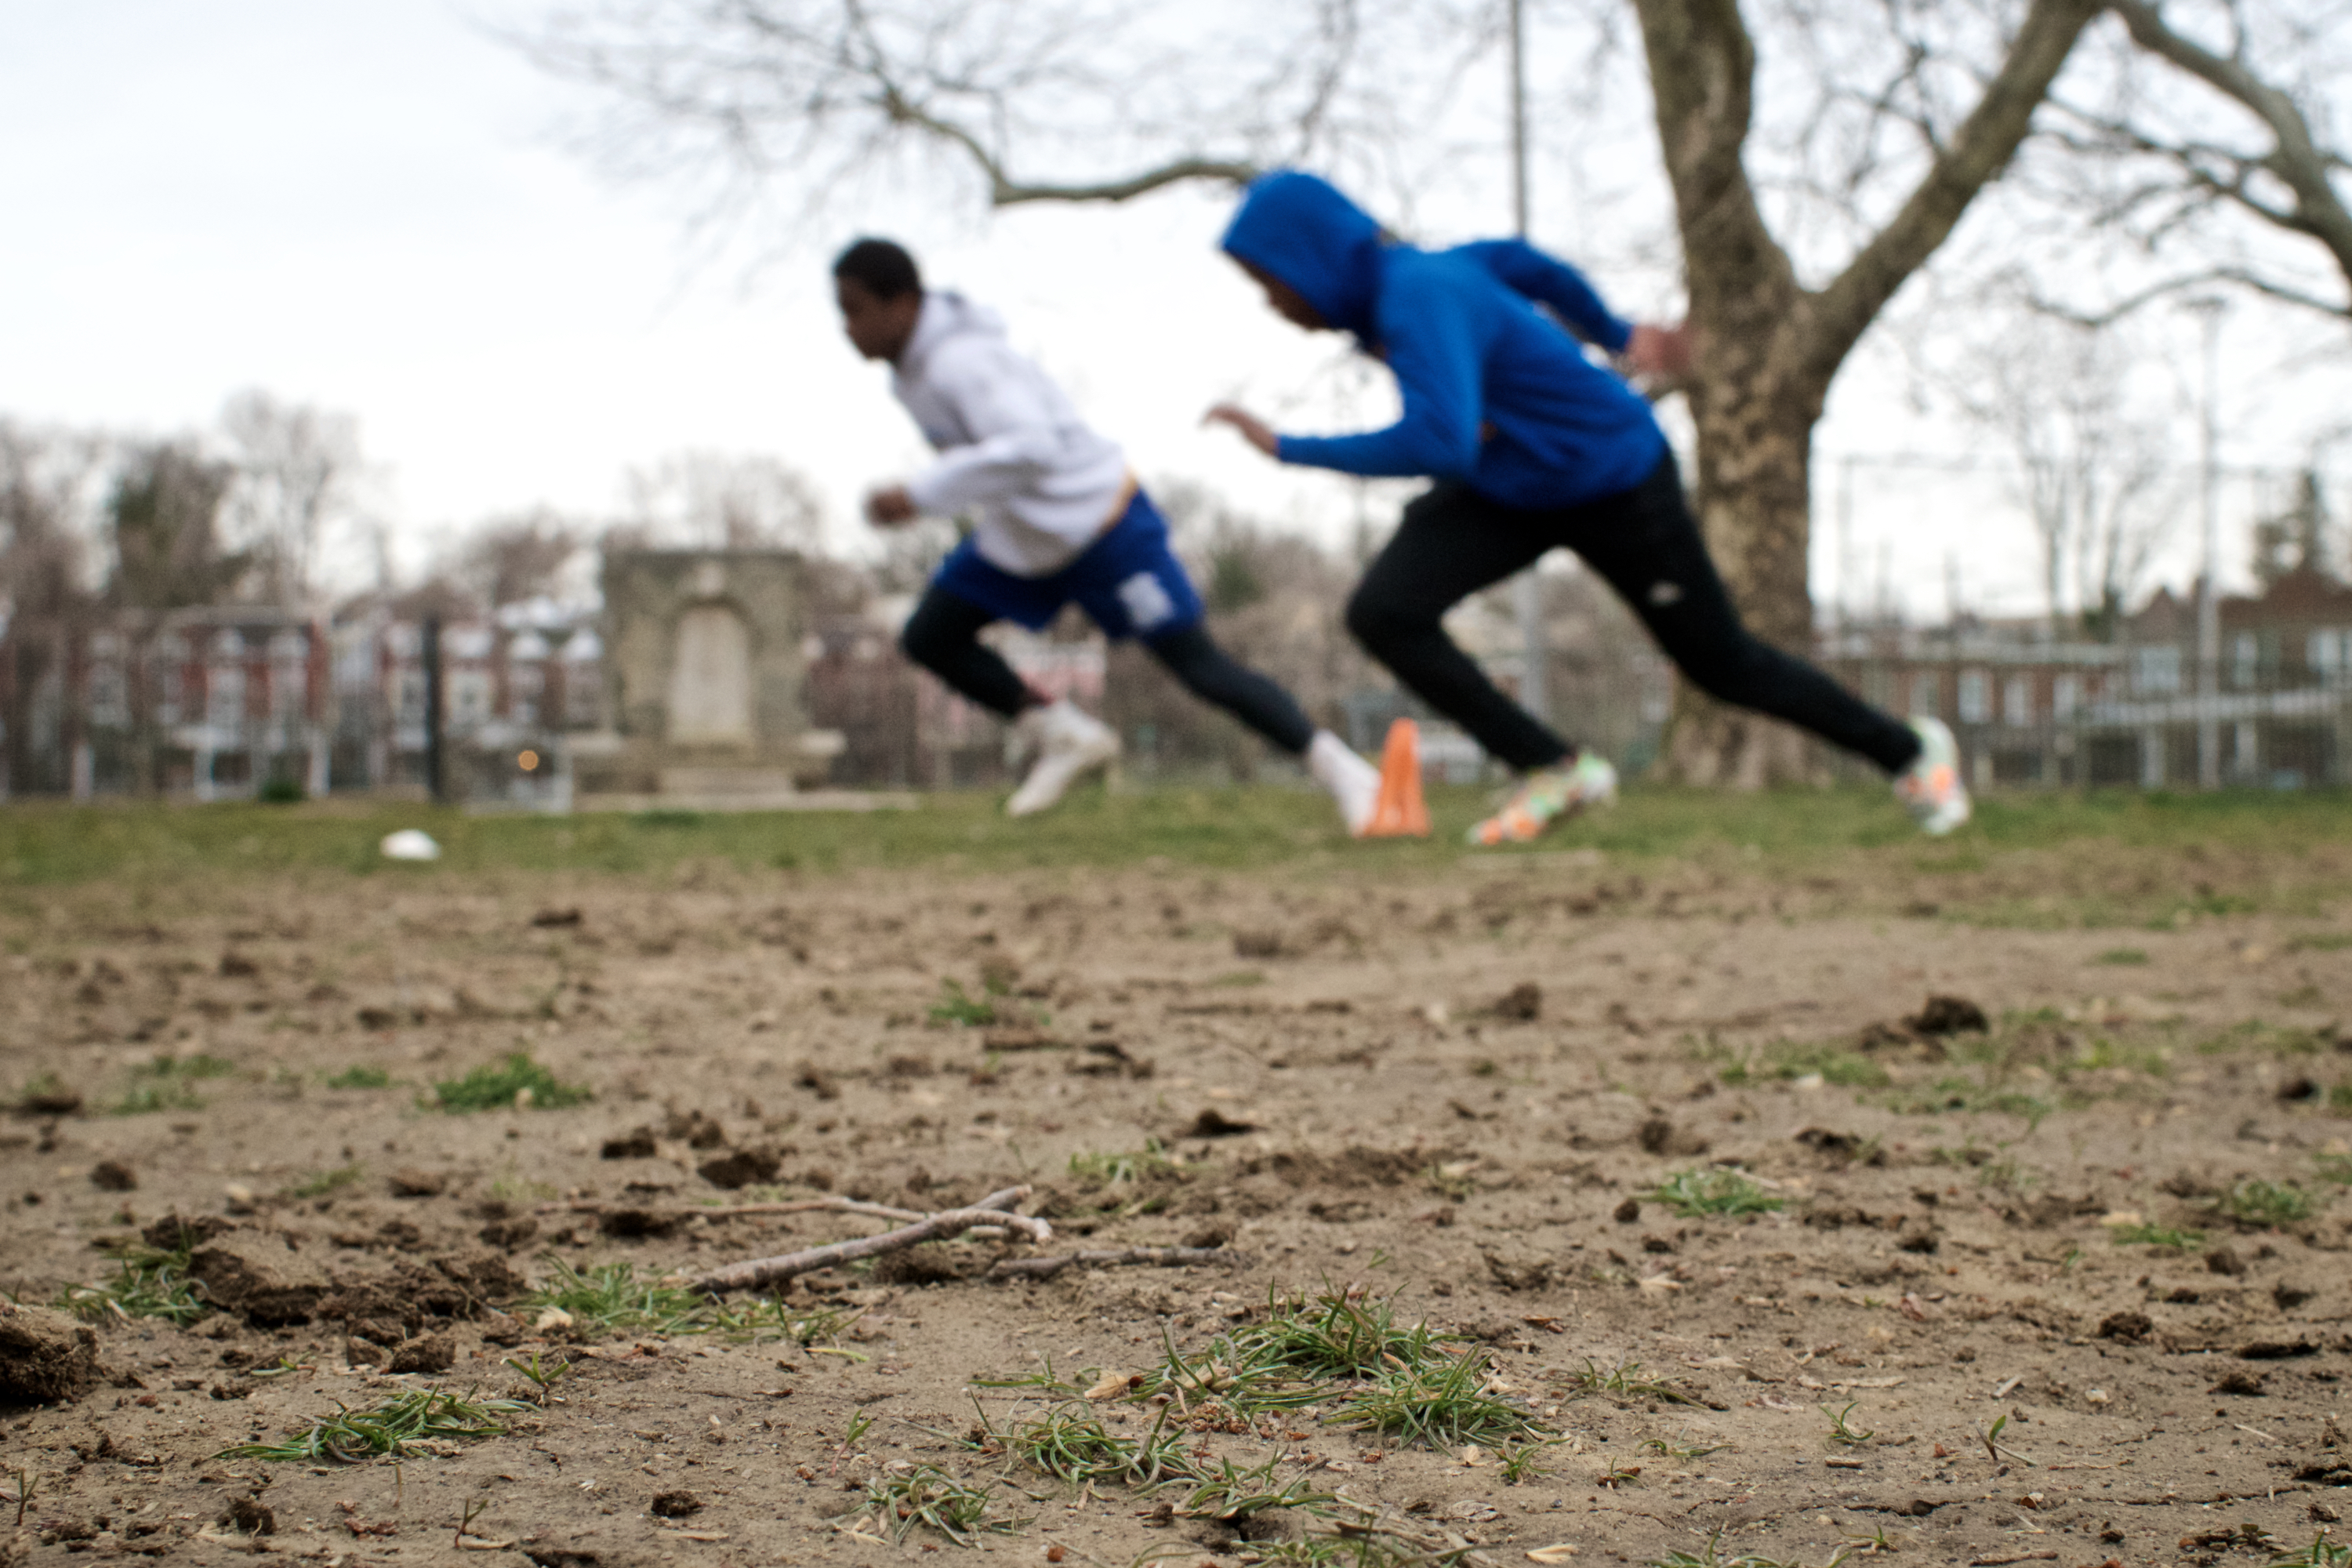 NW Raiders practice on the muddy city-owned football field behind Lonnie Young Rec. Center. (Bastiaan Slabbers for WHYY)